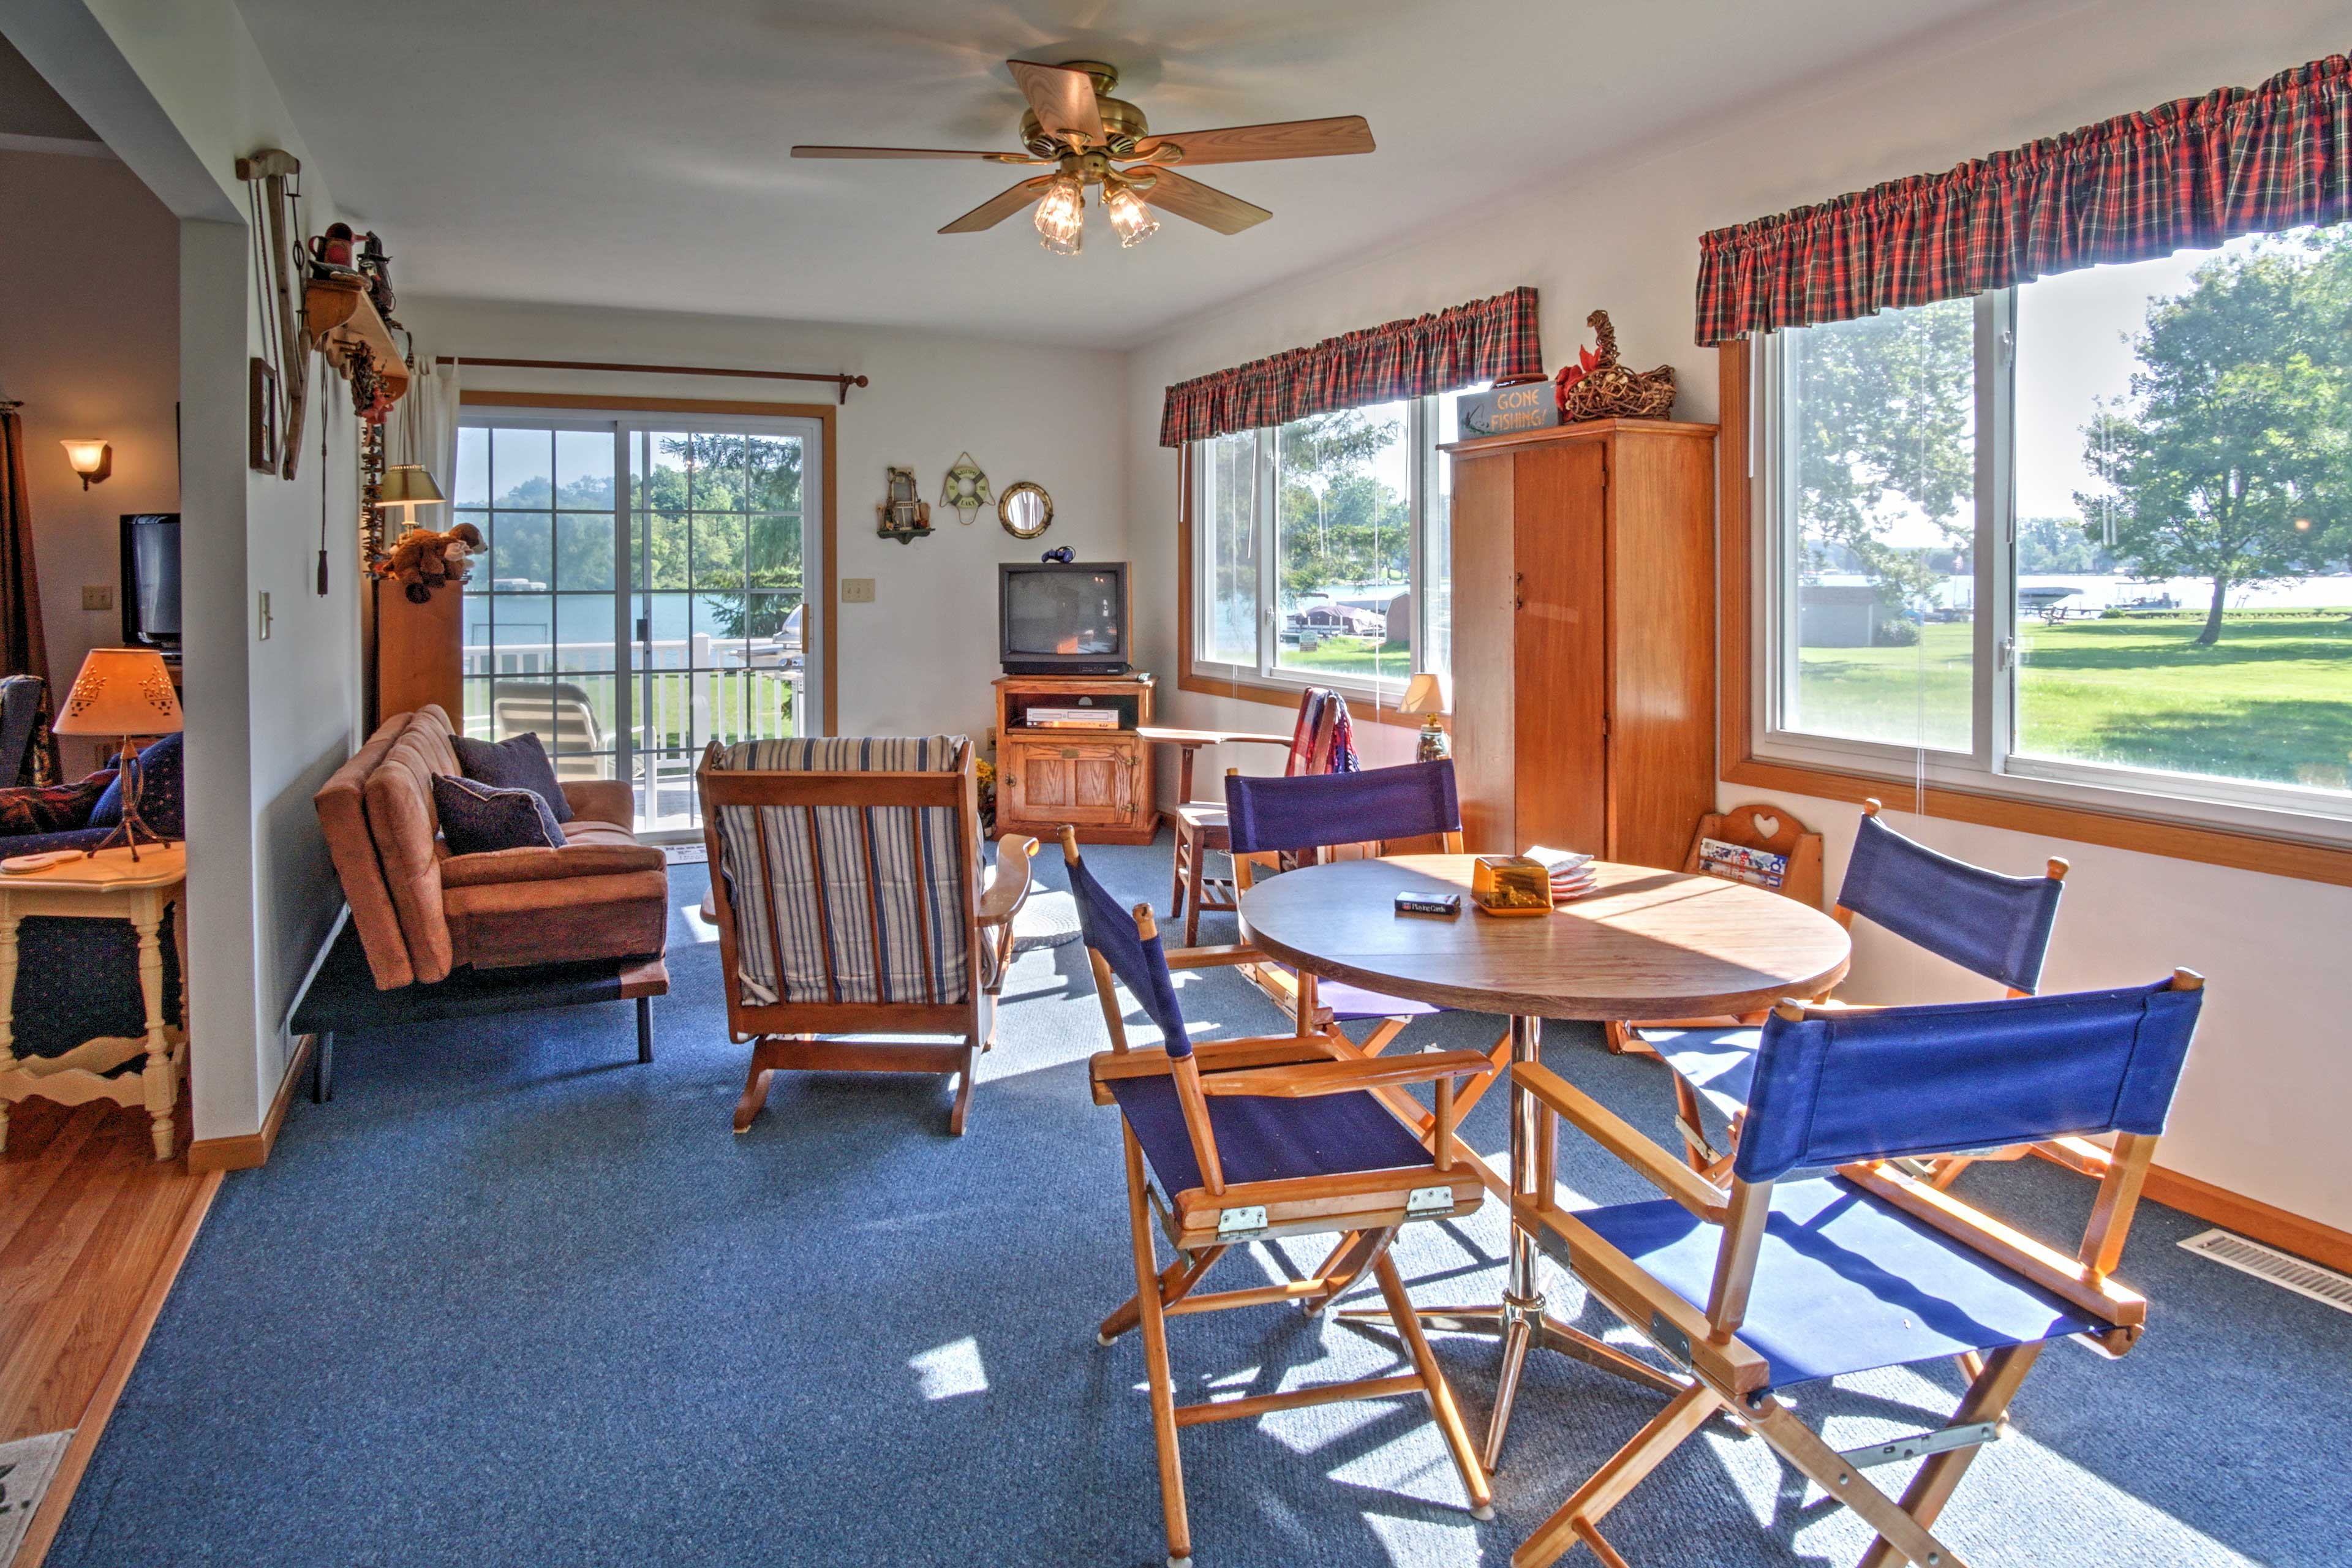 The game room offers views of the lake, board games, furnishings and a TV.